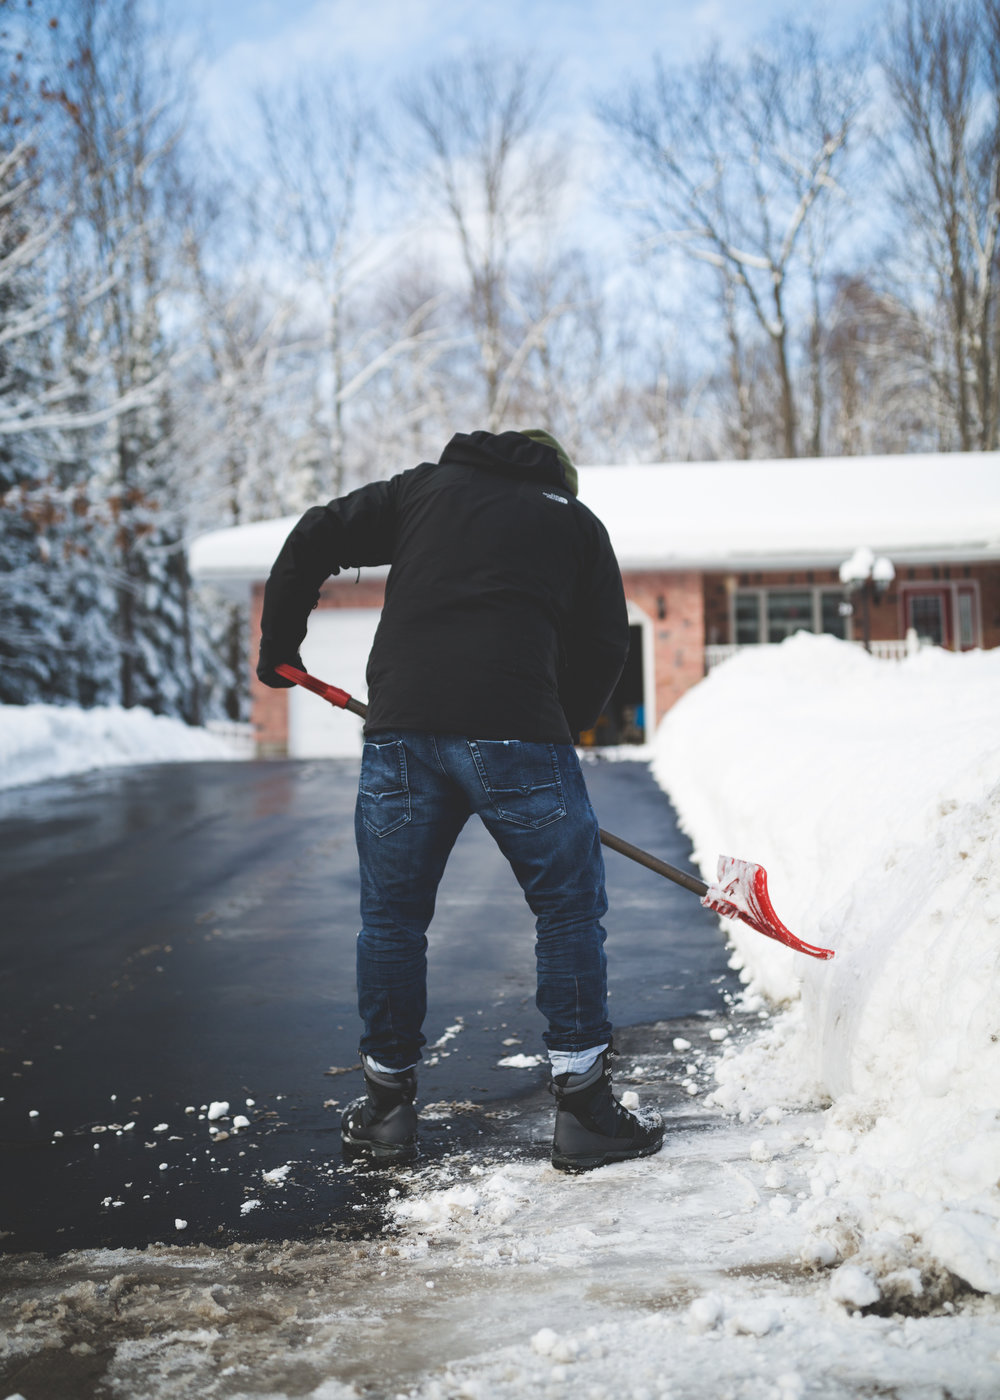 Snow Removal & Salting - Don't let your home become an ice rink! We only use pet & plant friendly Ice Melt to protect everyone in your home from dangerous slips and falls.